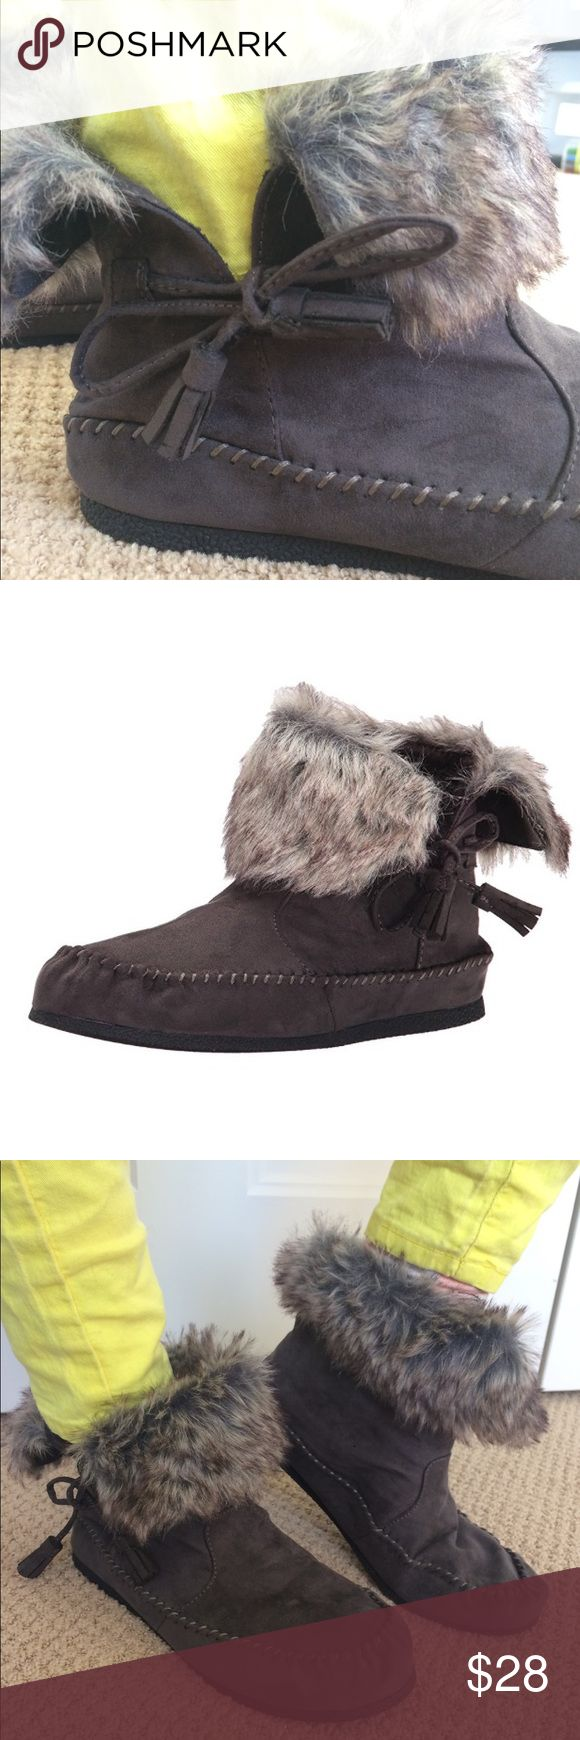 Fur cuff moccasin boot Brand spanking new boots that can be worn with the cuff up or down. Adorable! Madden Girl Shoes